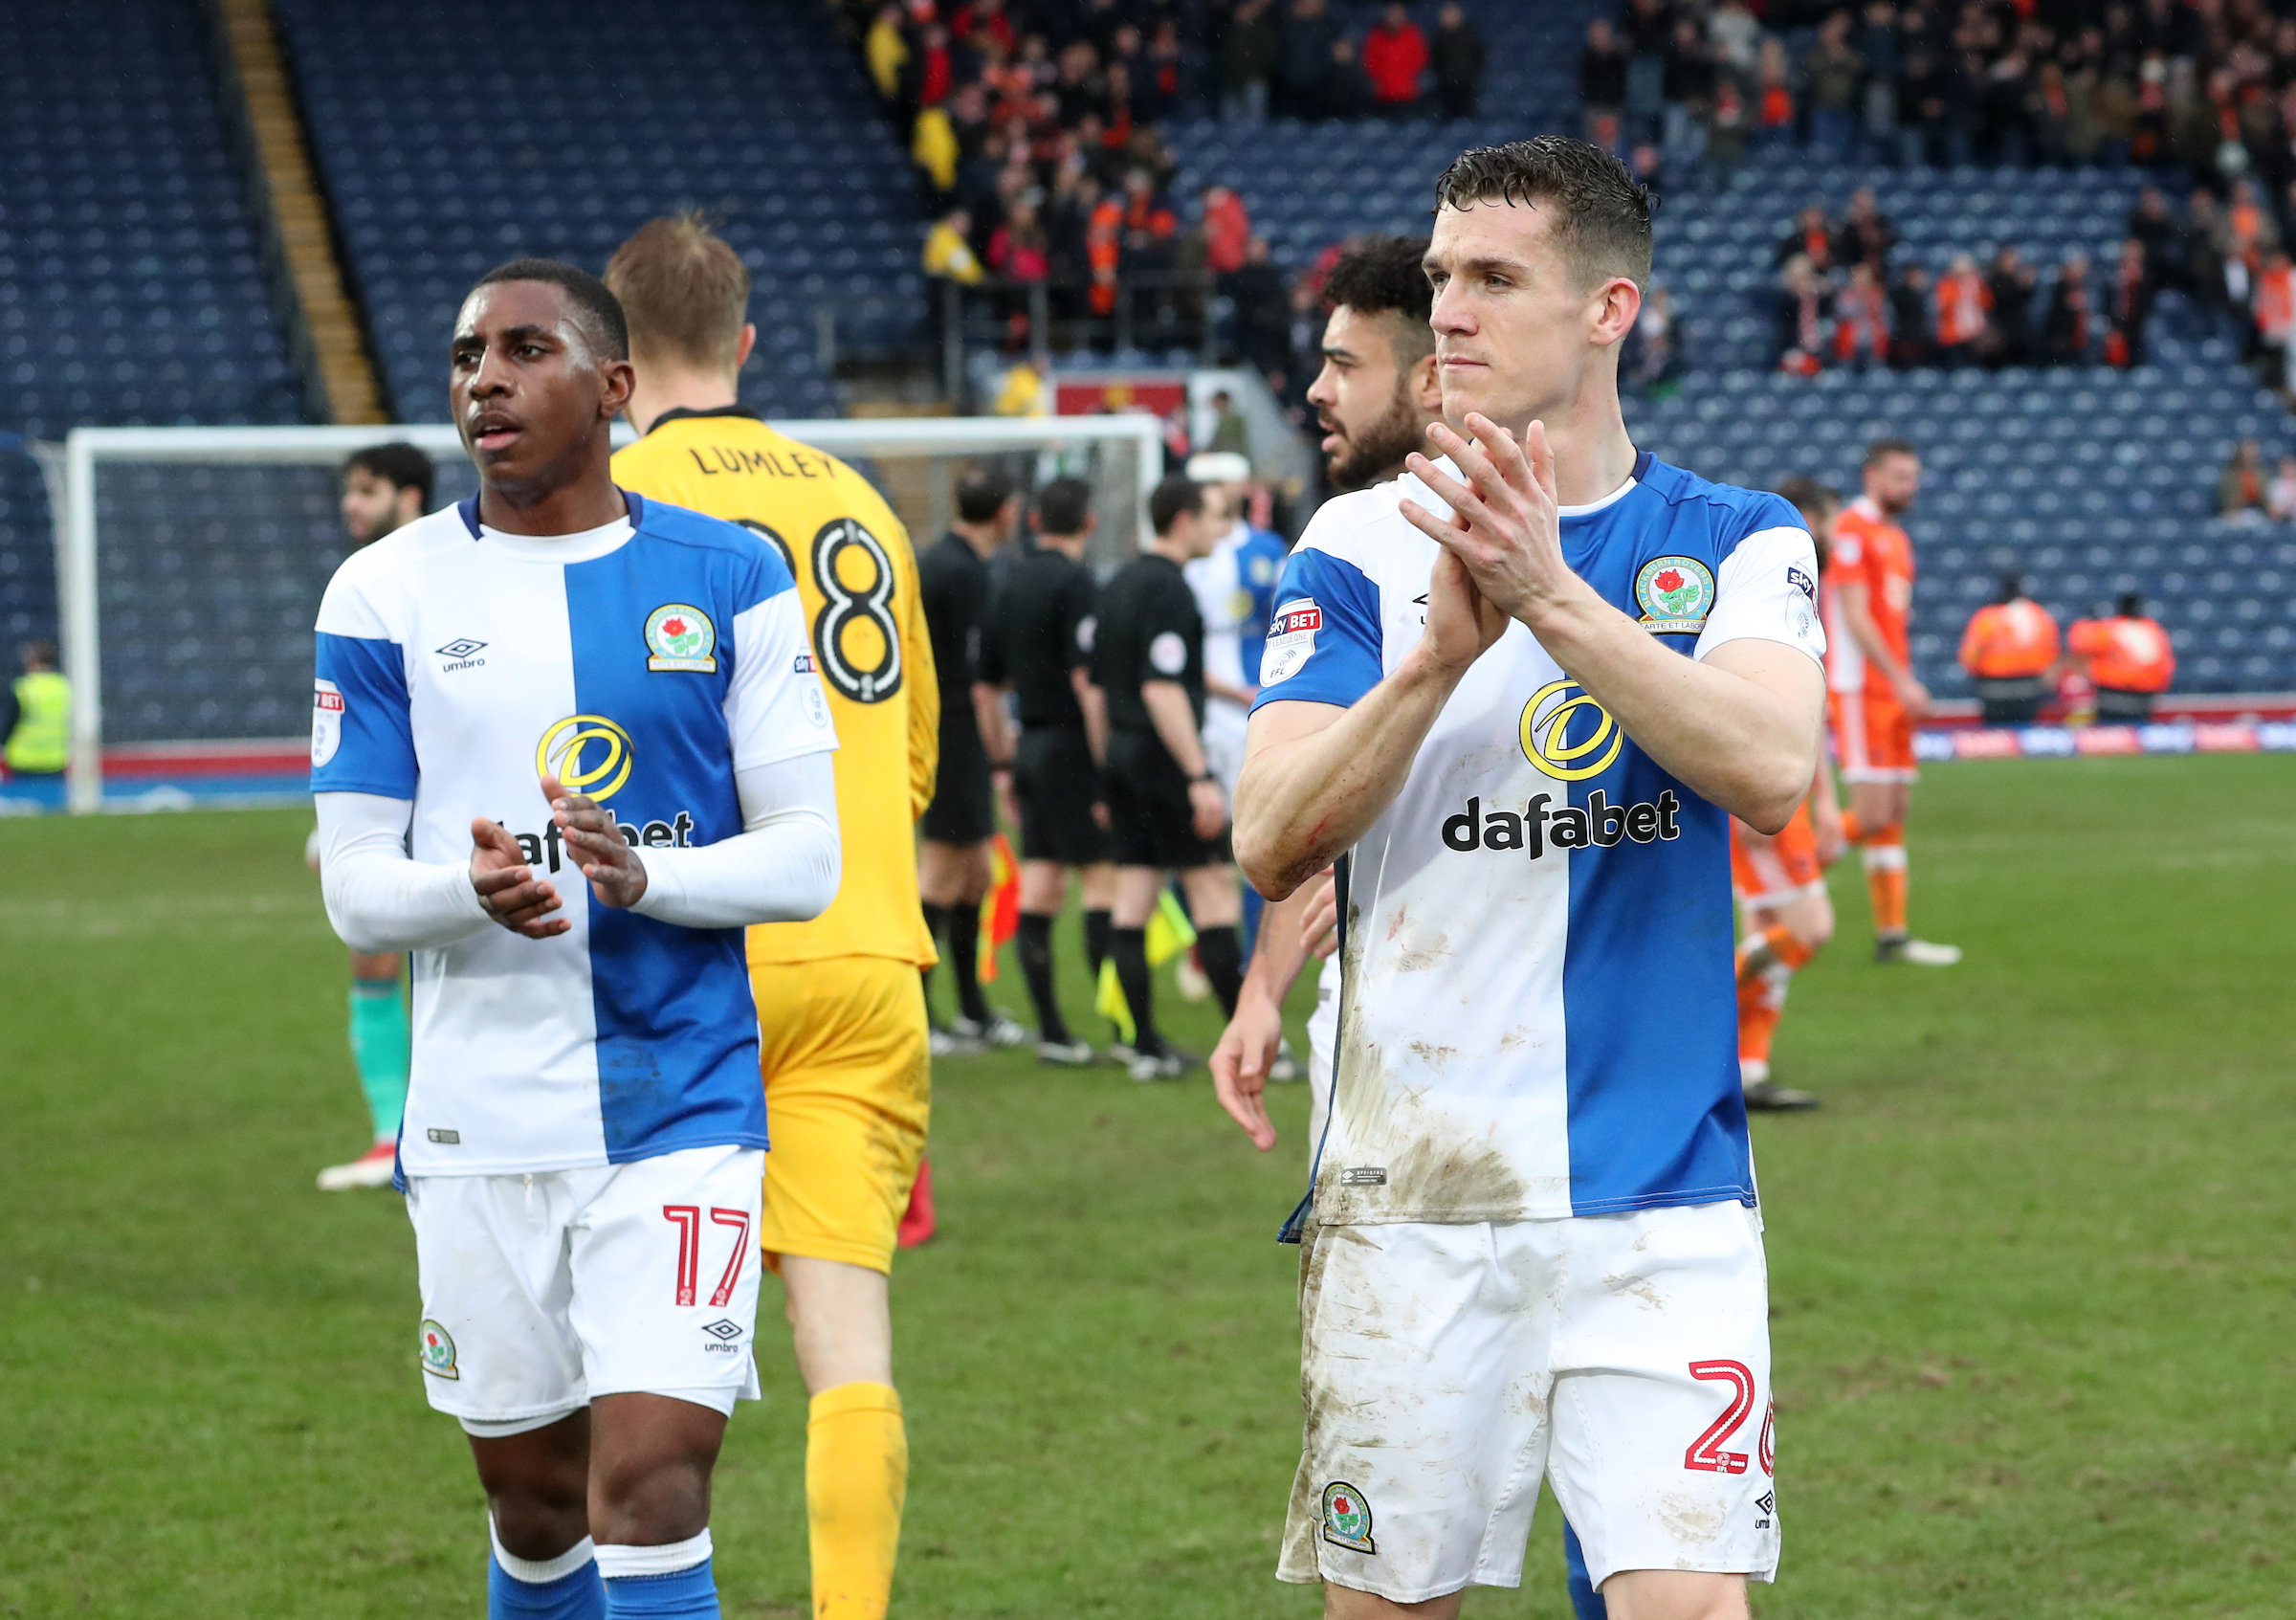 Rovers have won four of the games in which Darragh Lenihan has featured in since injury